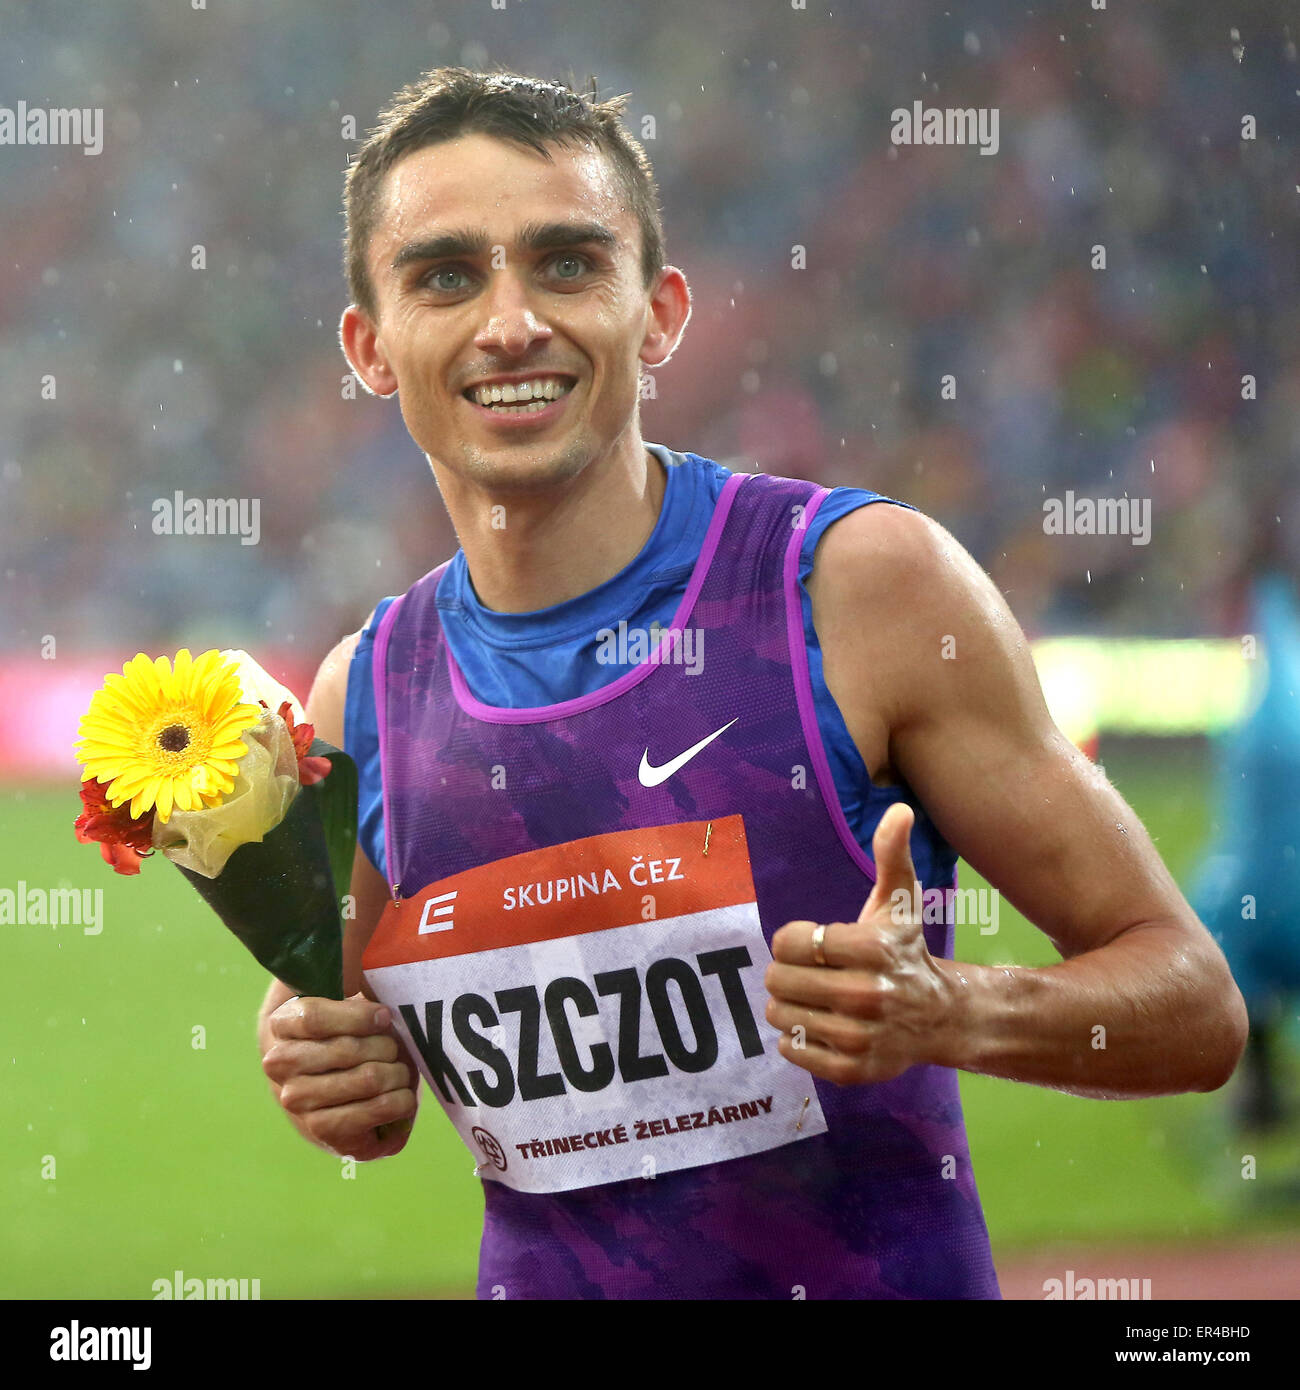 Ostrava, Czech Republic. 26th May, 2015. Polish Adam Kszczot celebrates he won the 600 metres men event at the Golden - Stock Image